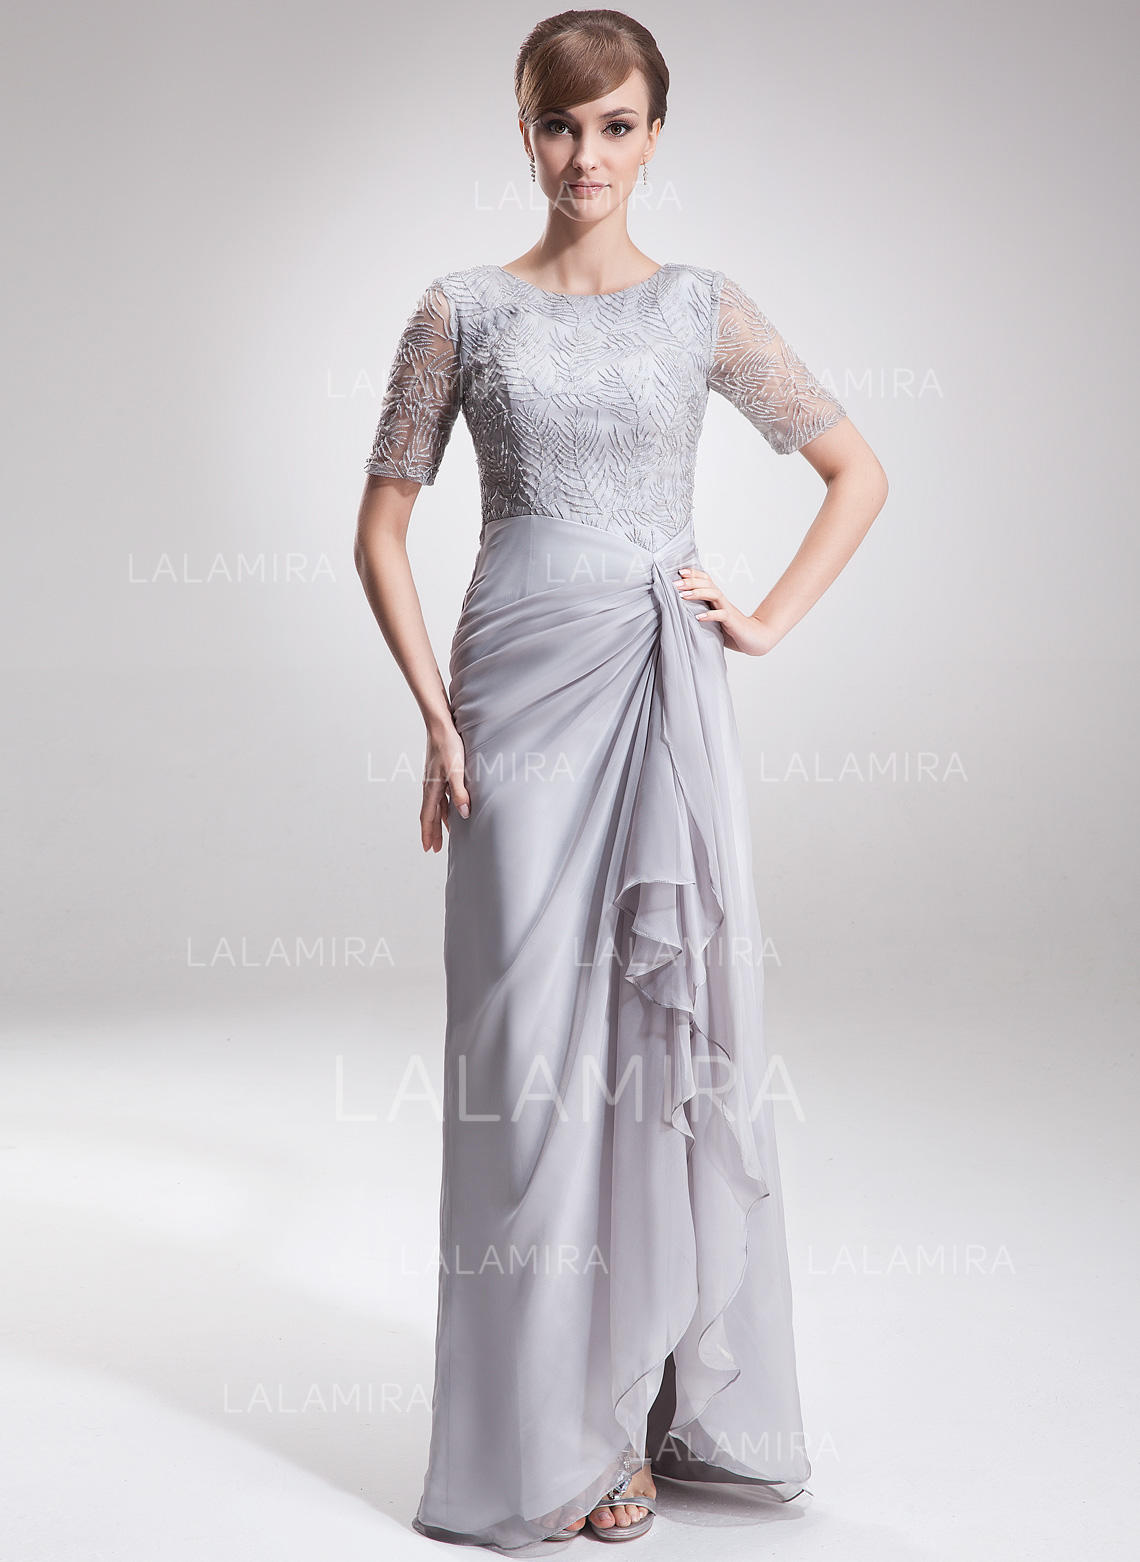 a353a85d344 ... mauve mother of the bride dresses. A-Line Princess Chiffon Lace 1 2  Sleeves Scoop Neck Asymmetrical Zipper Up. Loading zoom